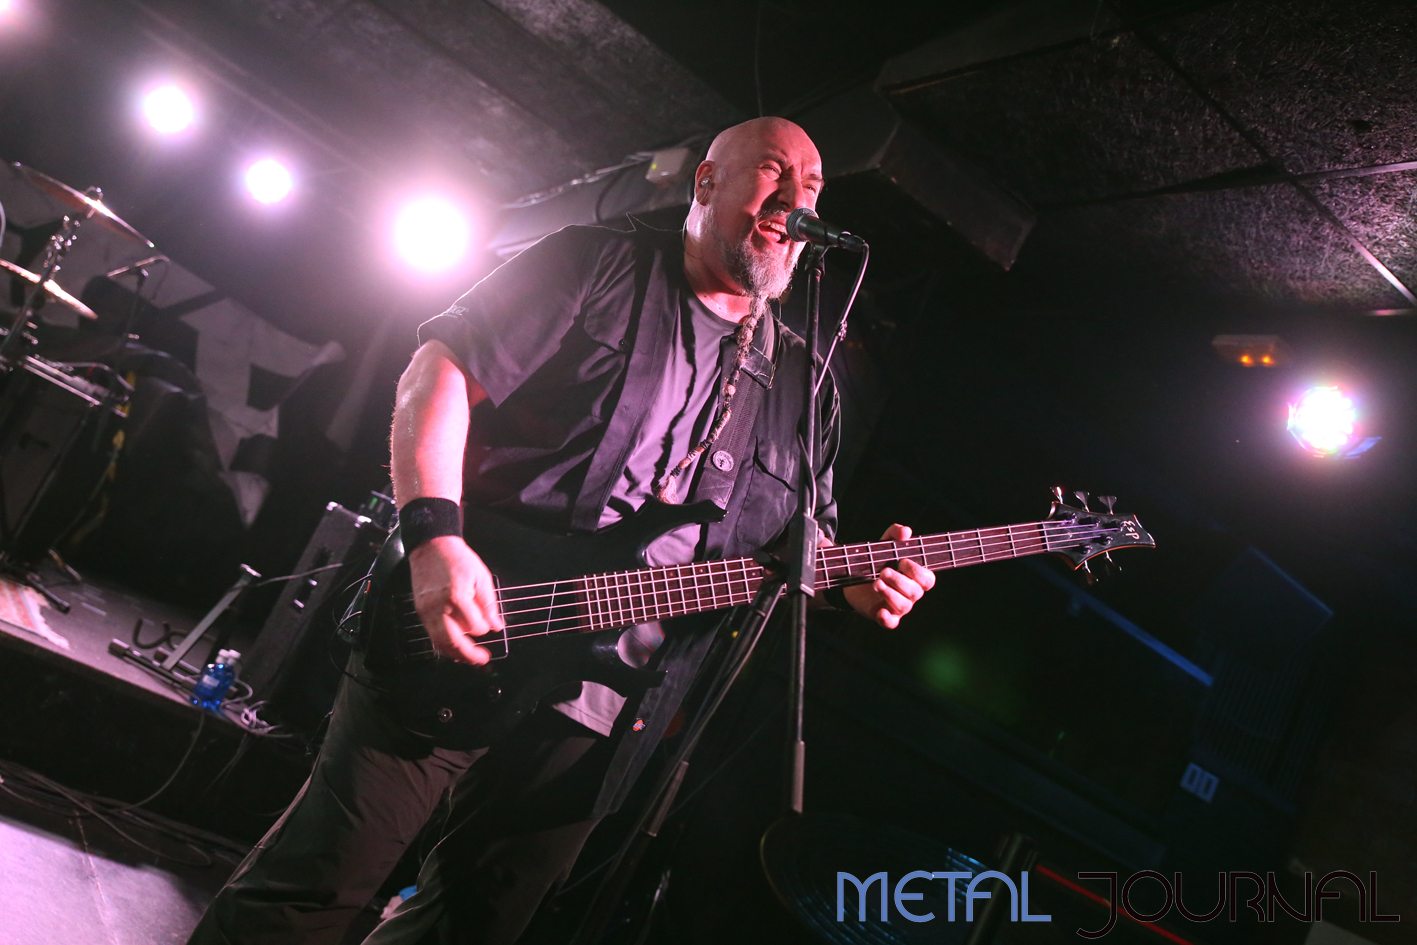 refuge - metal journal 2018 pic 1